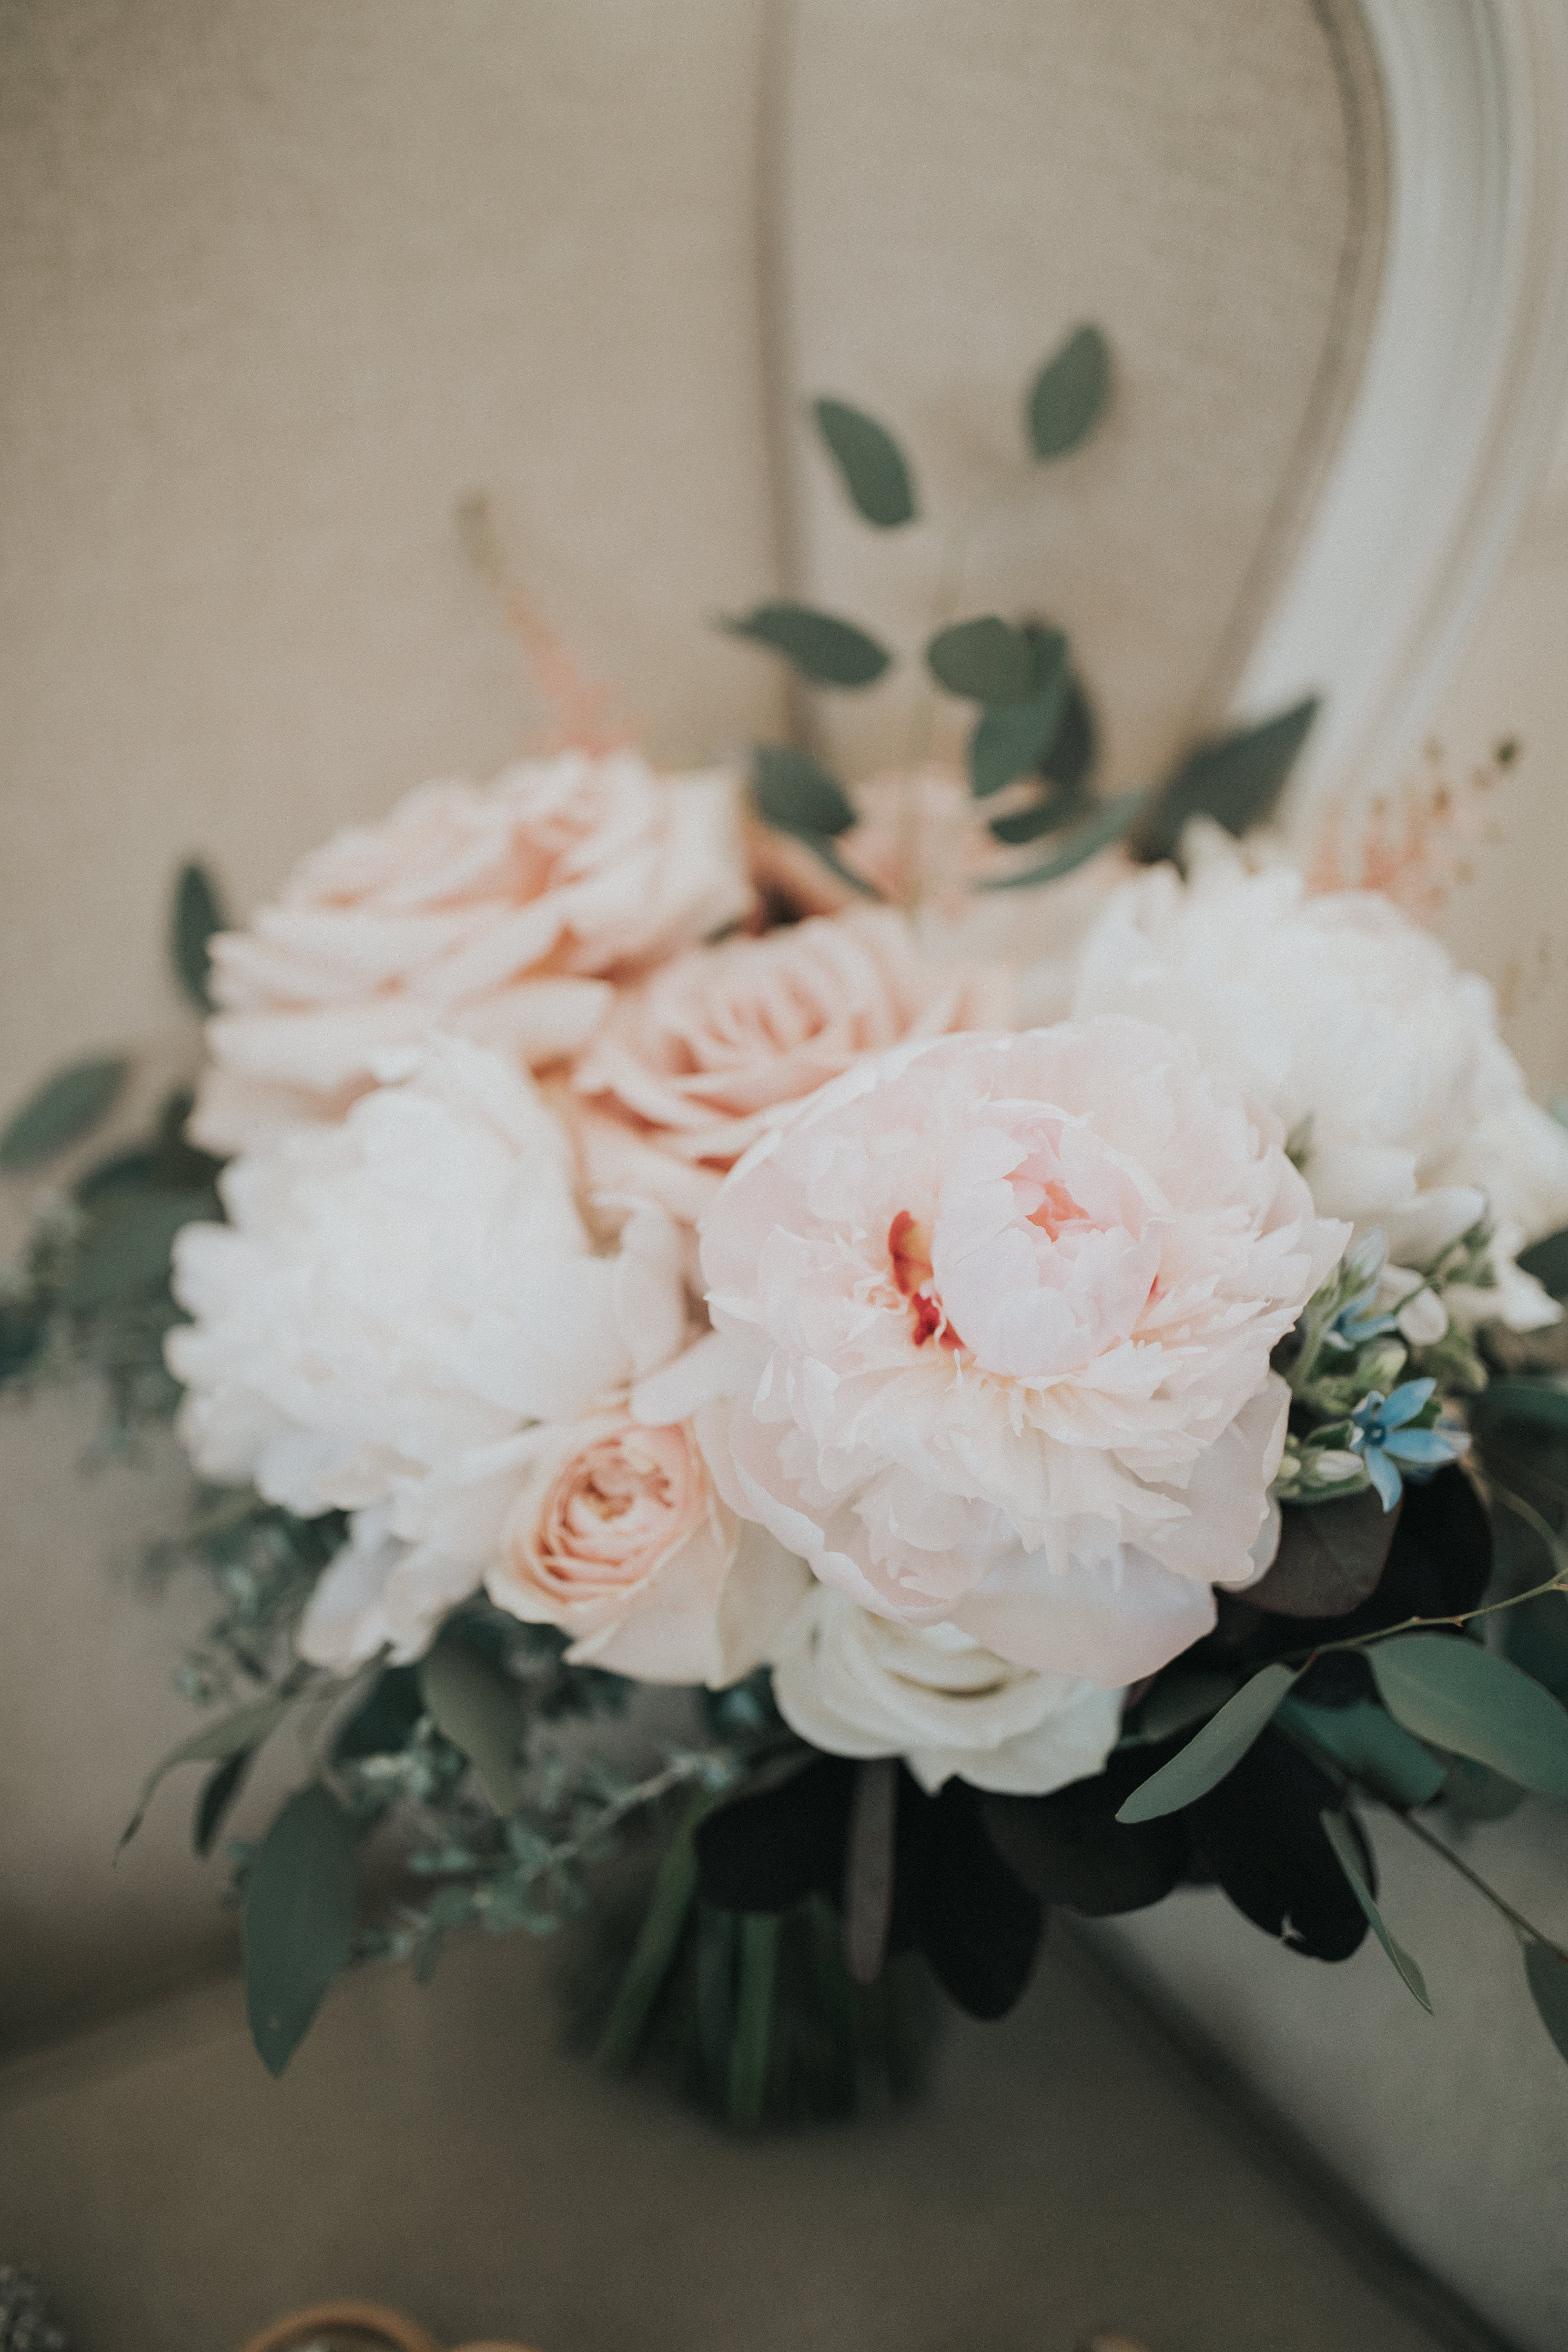 Soft bouquet with pinks and whites